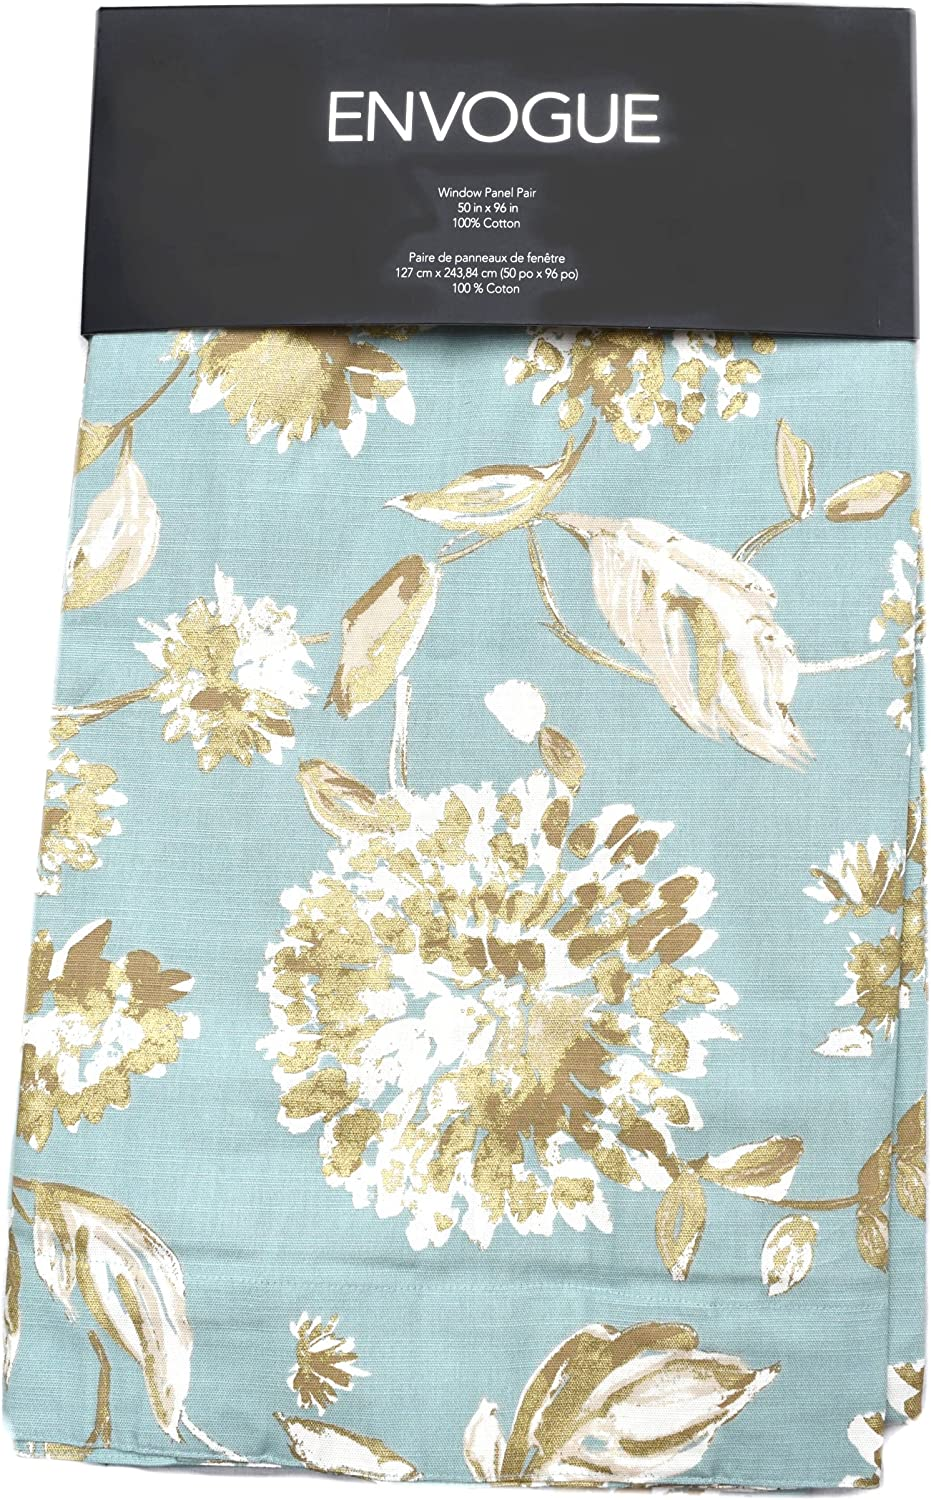 Tahari Home Envogue French Country Floral Print Window Curtain Panels Drapes Pair 50-by-96-inch Milena Flowers Teal Metallic Gold Tan